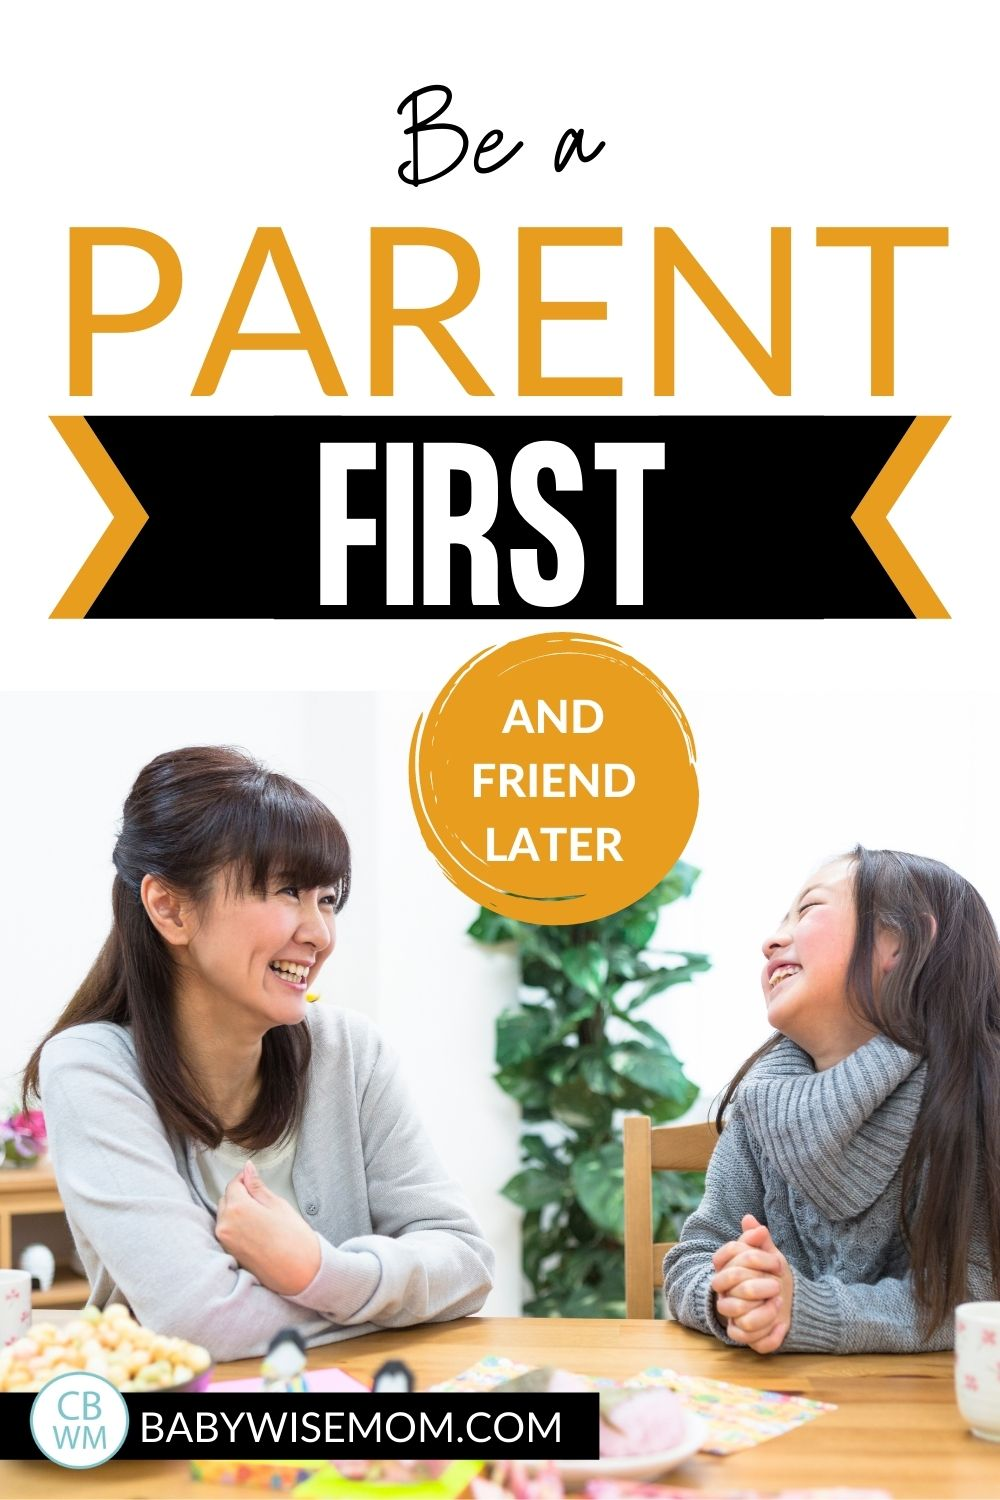 Be a parent first and friend later